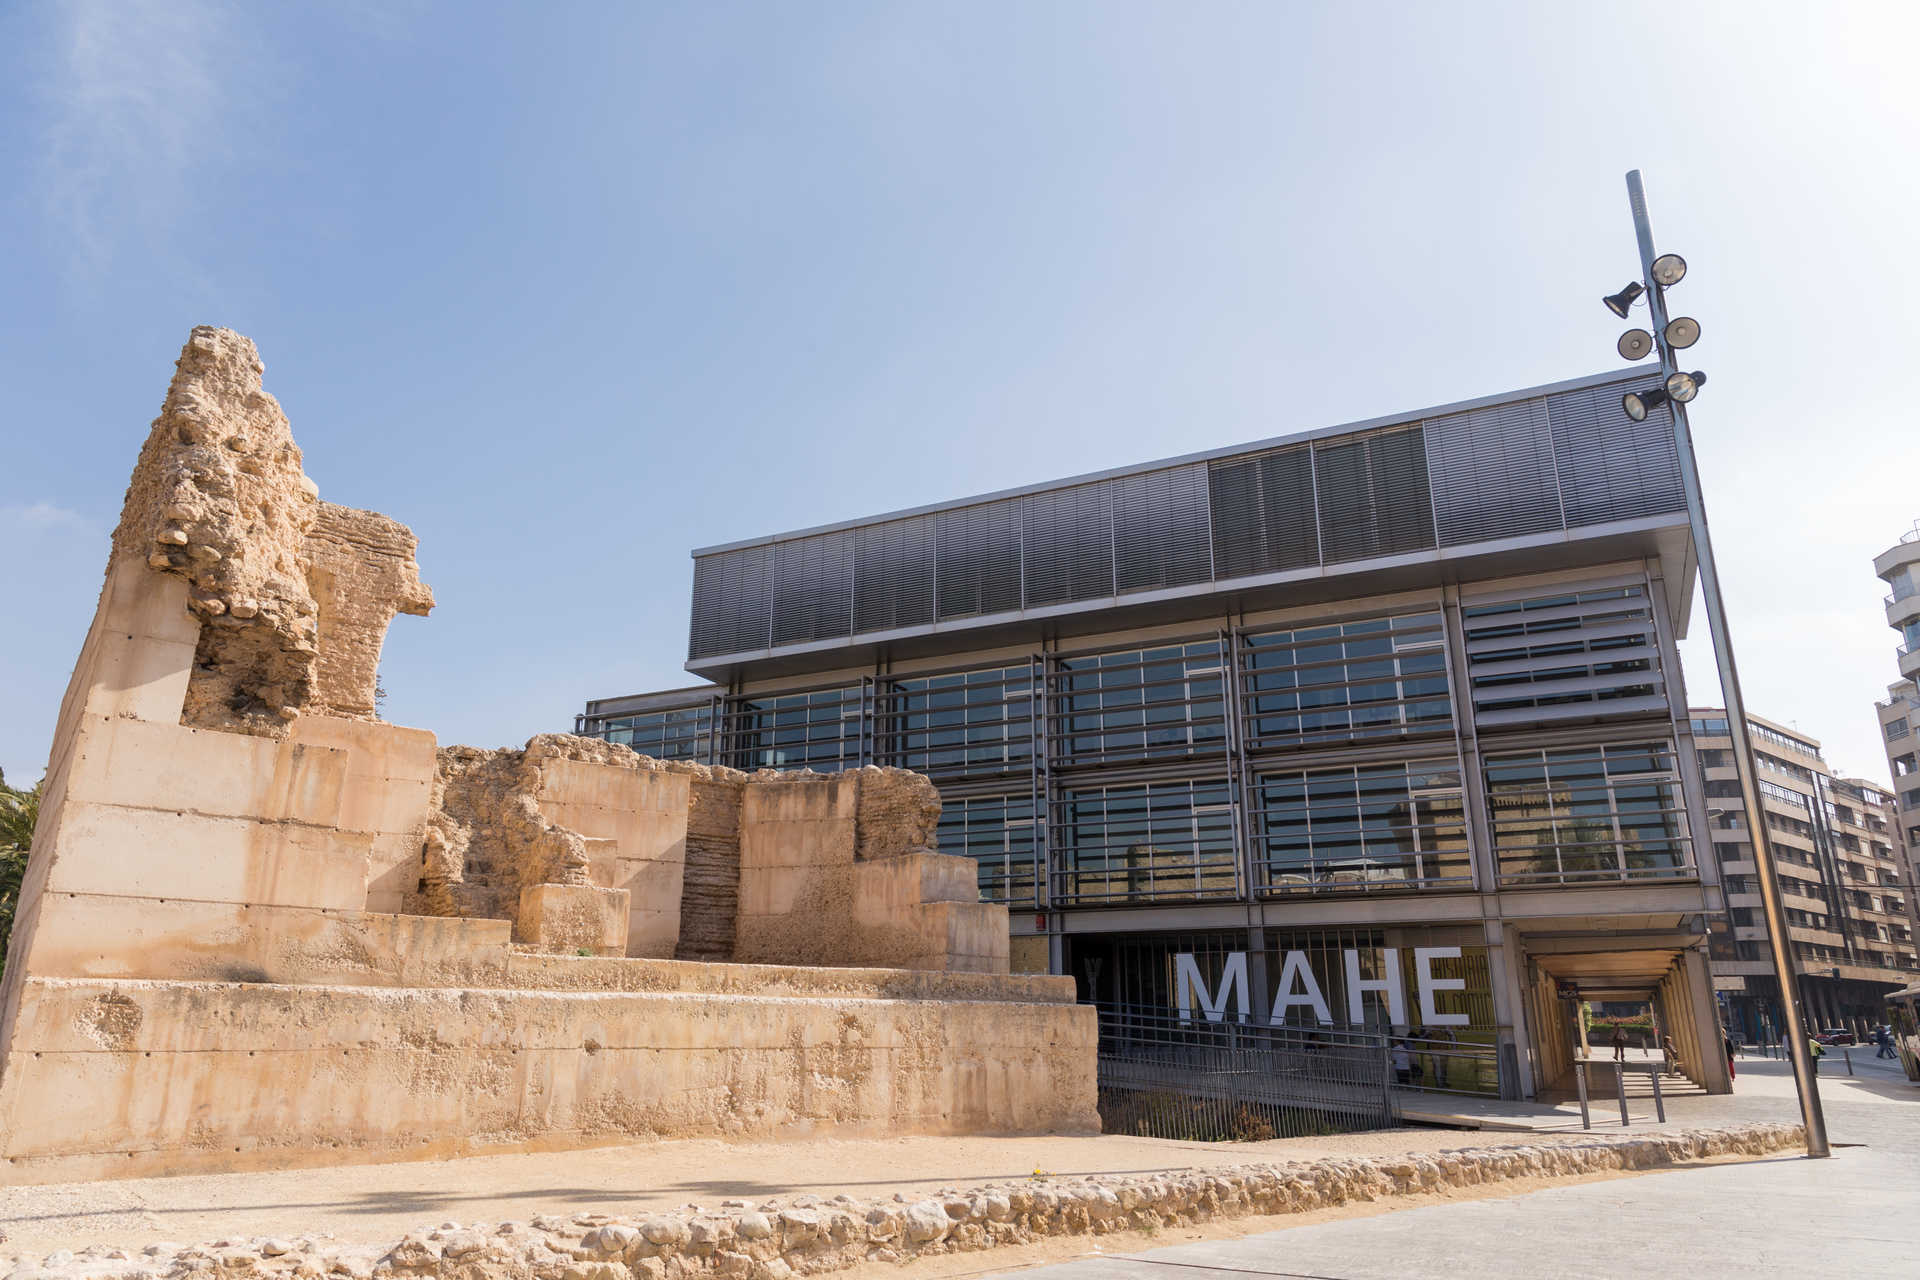 Museum of Archaeology and History of Elche (MAHE)